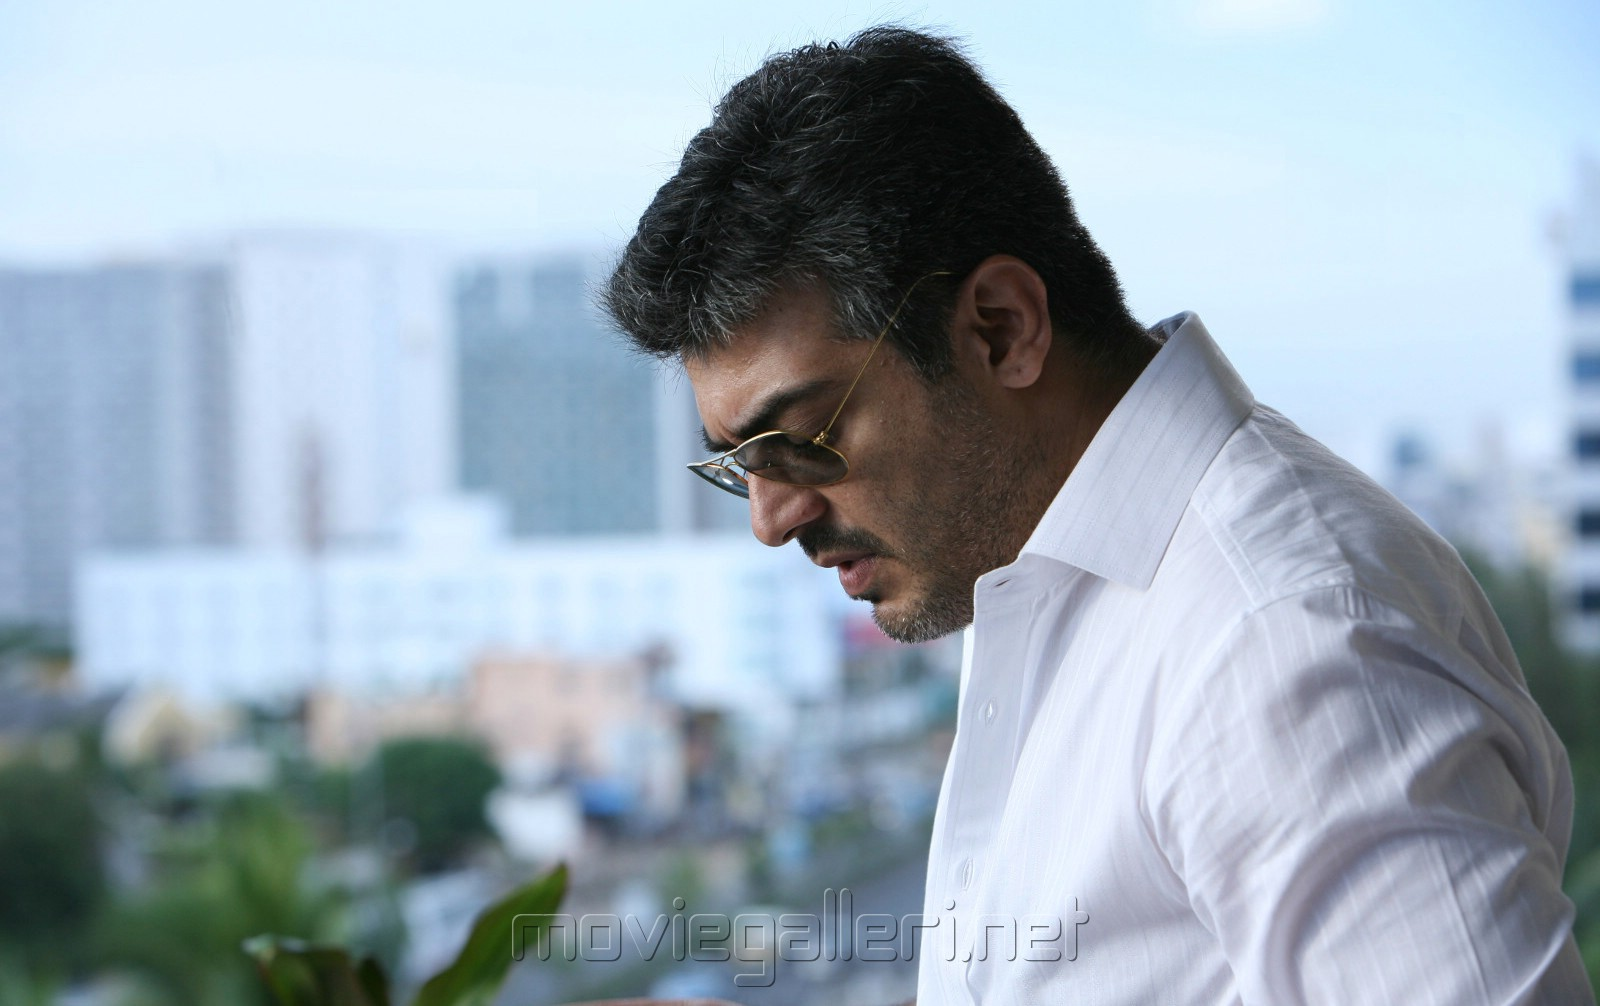 Veeram HQ Movie Wallpapers | Veeram HD Movie ... - FilmiBeat